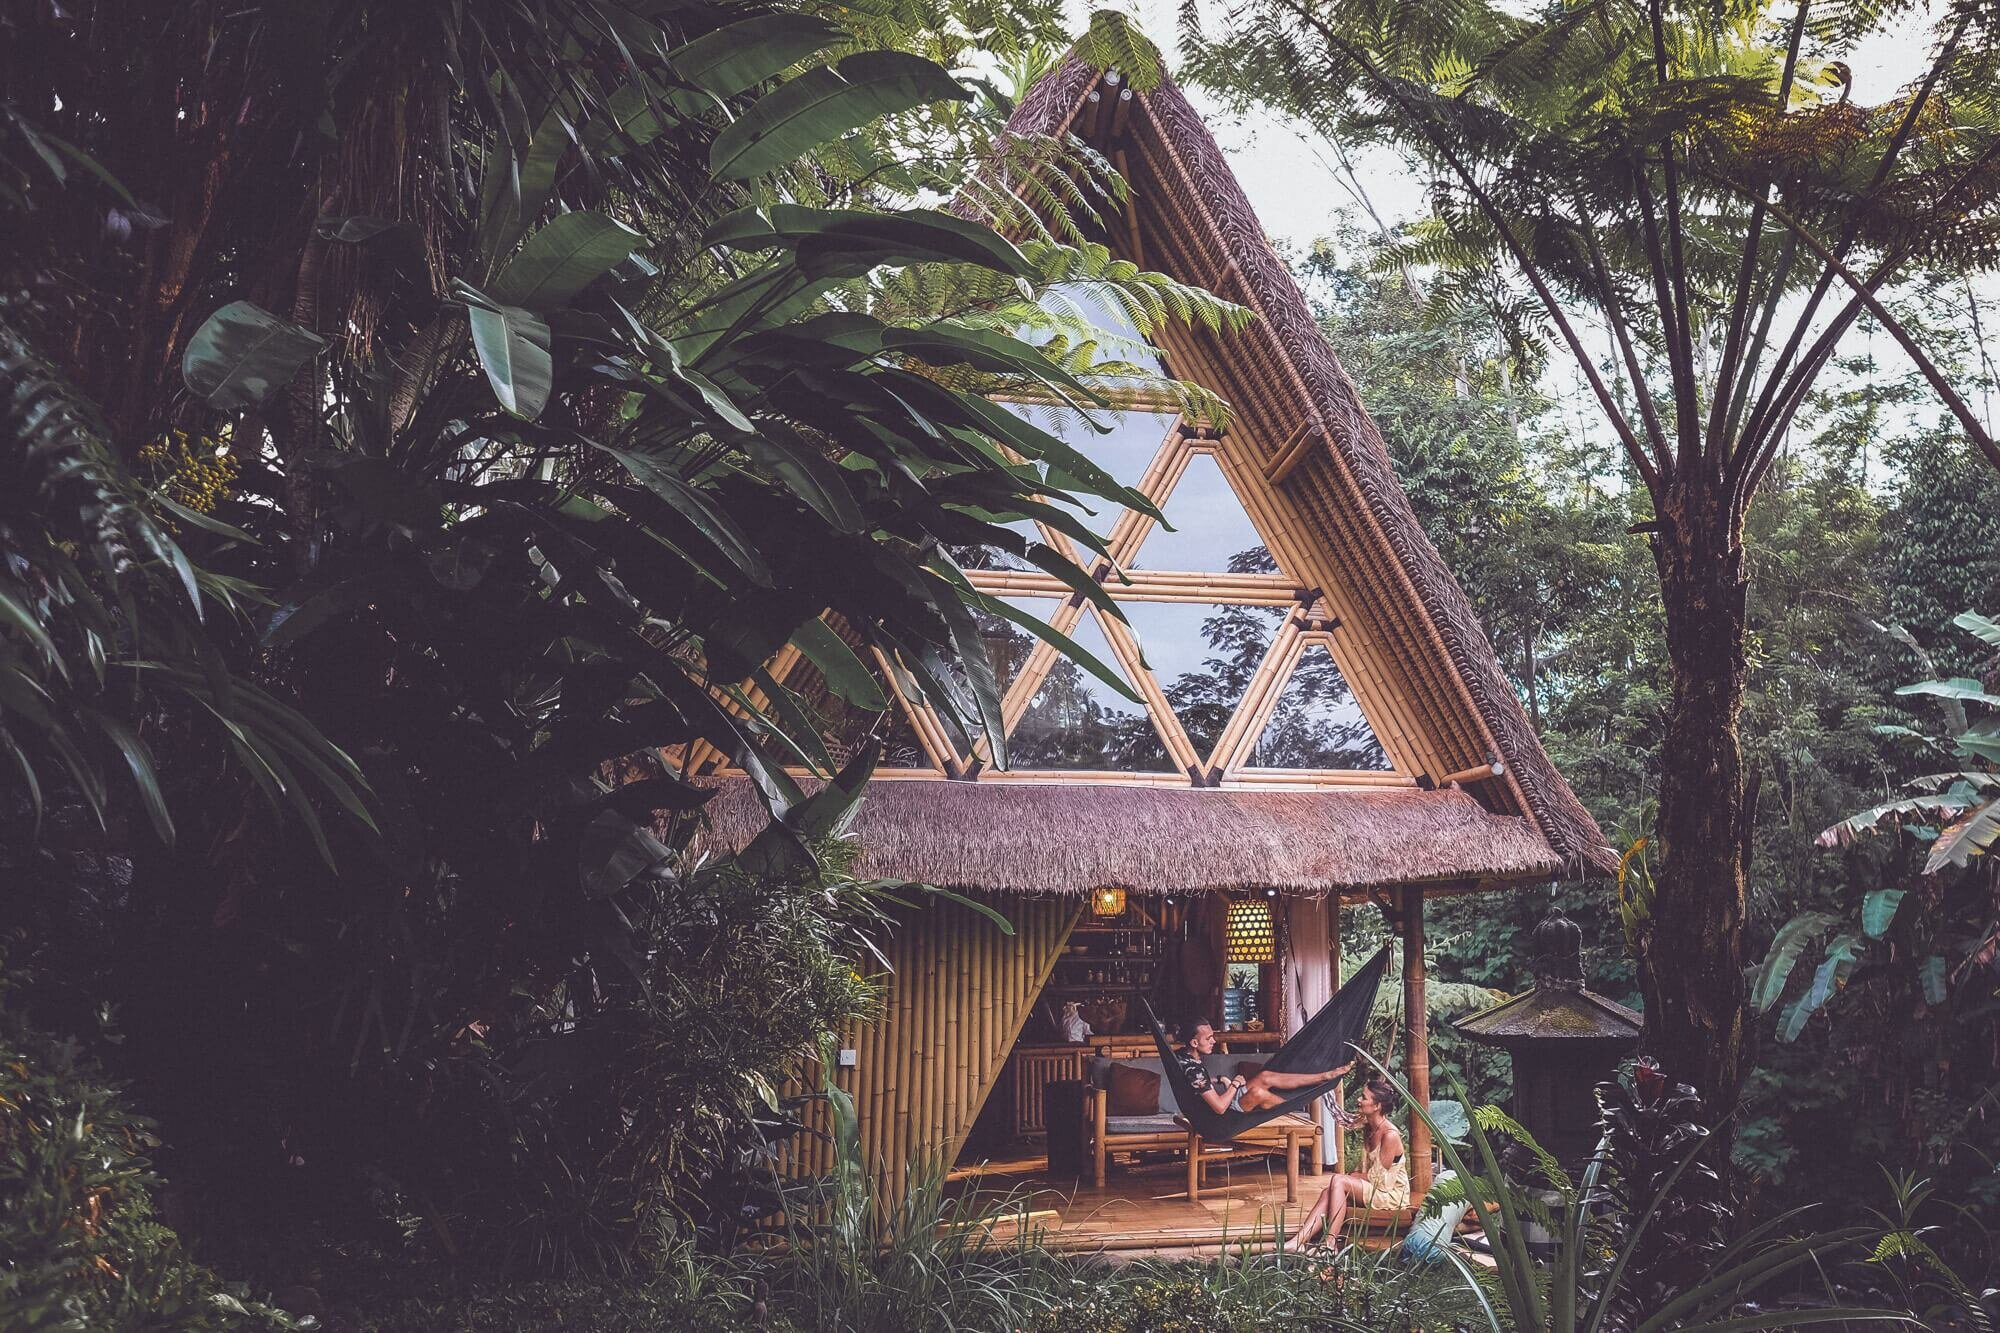 Hideout Bali Is A Unique Home Set Among The Jungle Forest